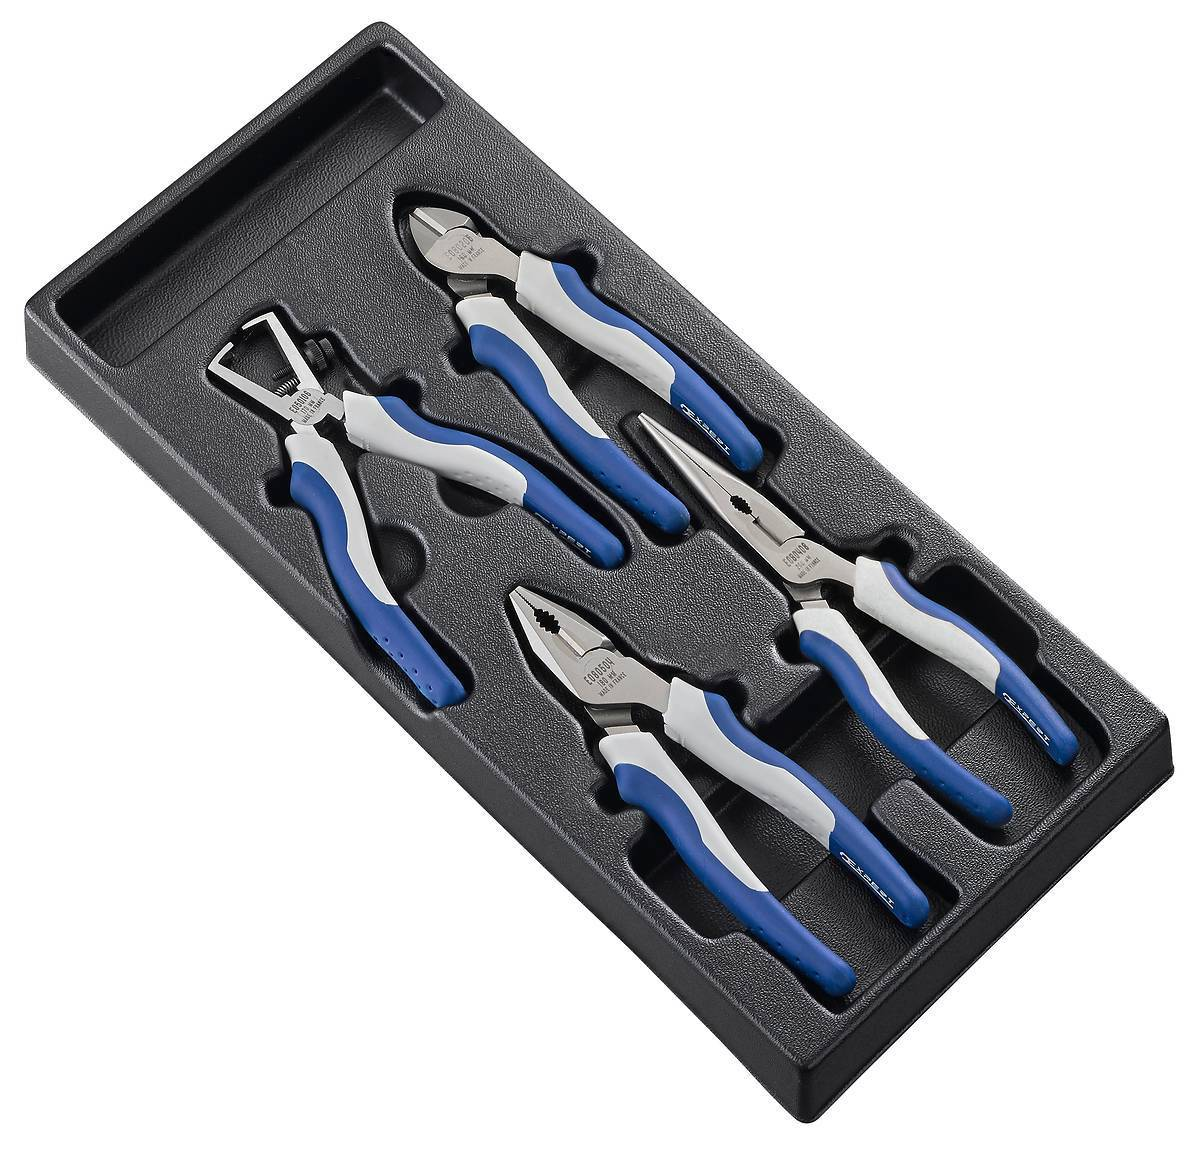 EXPERT E080821 - Module Of Mechanical + Cutting Pliers